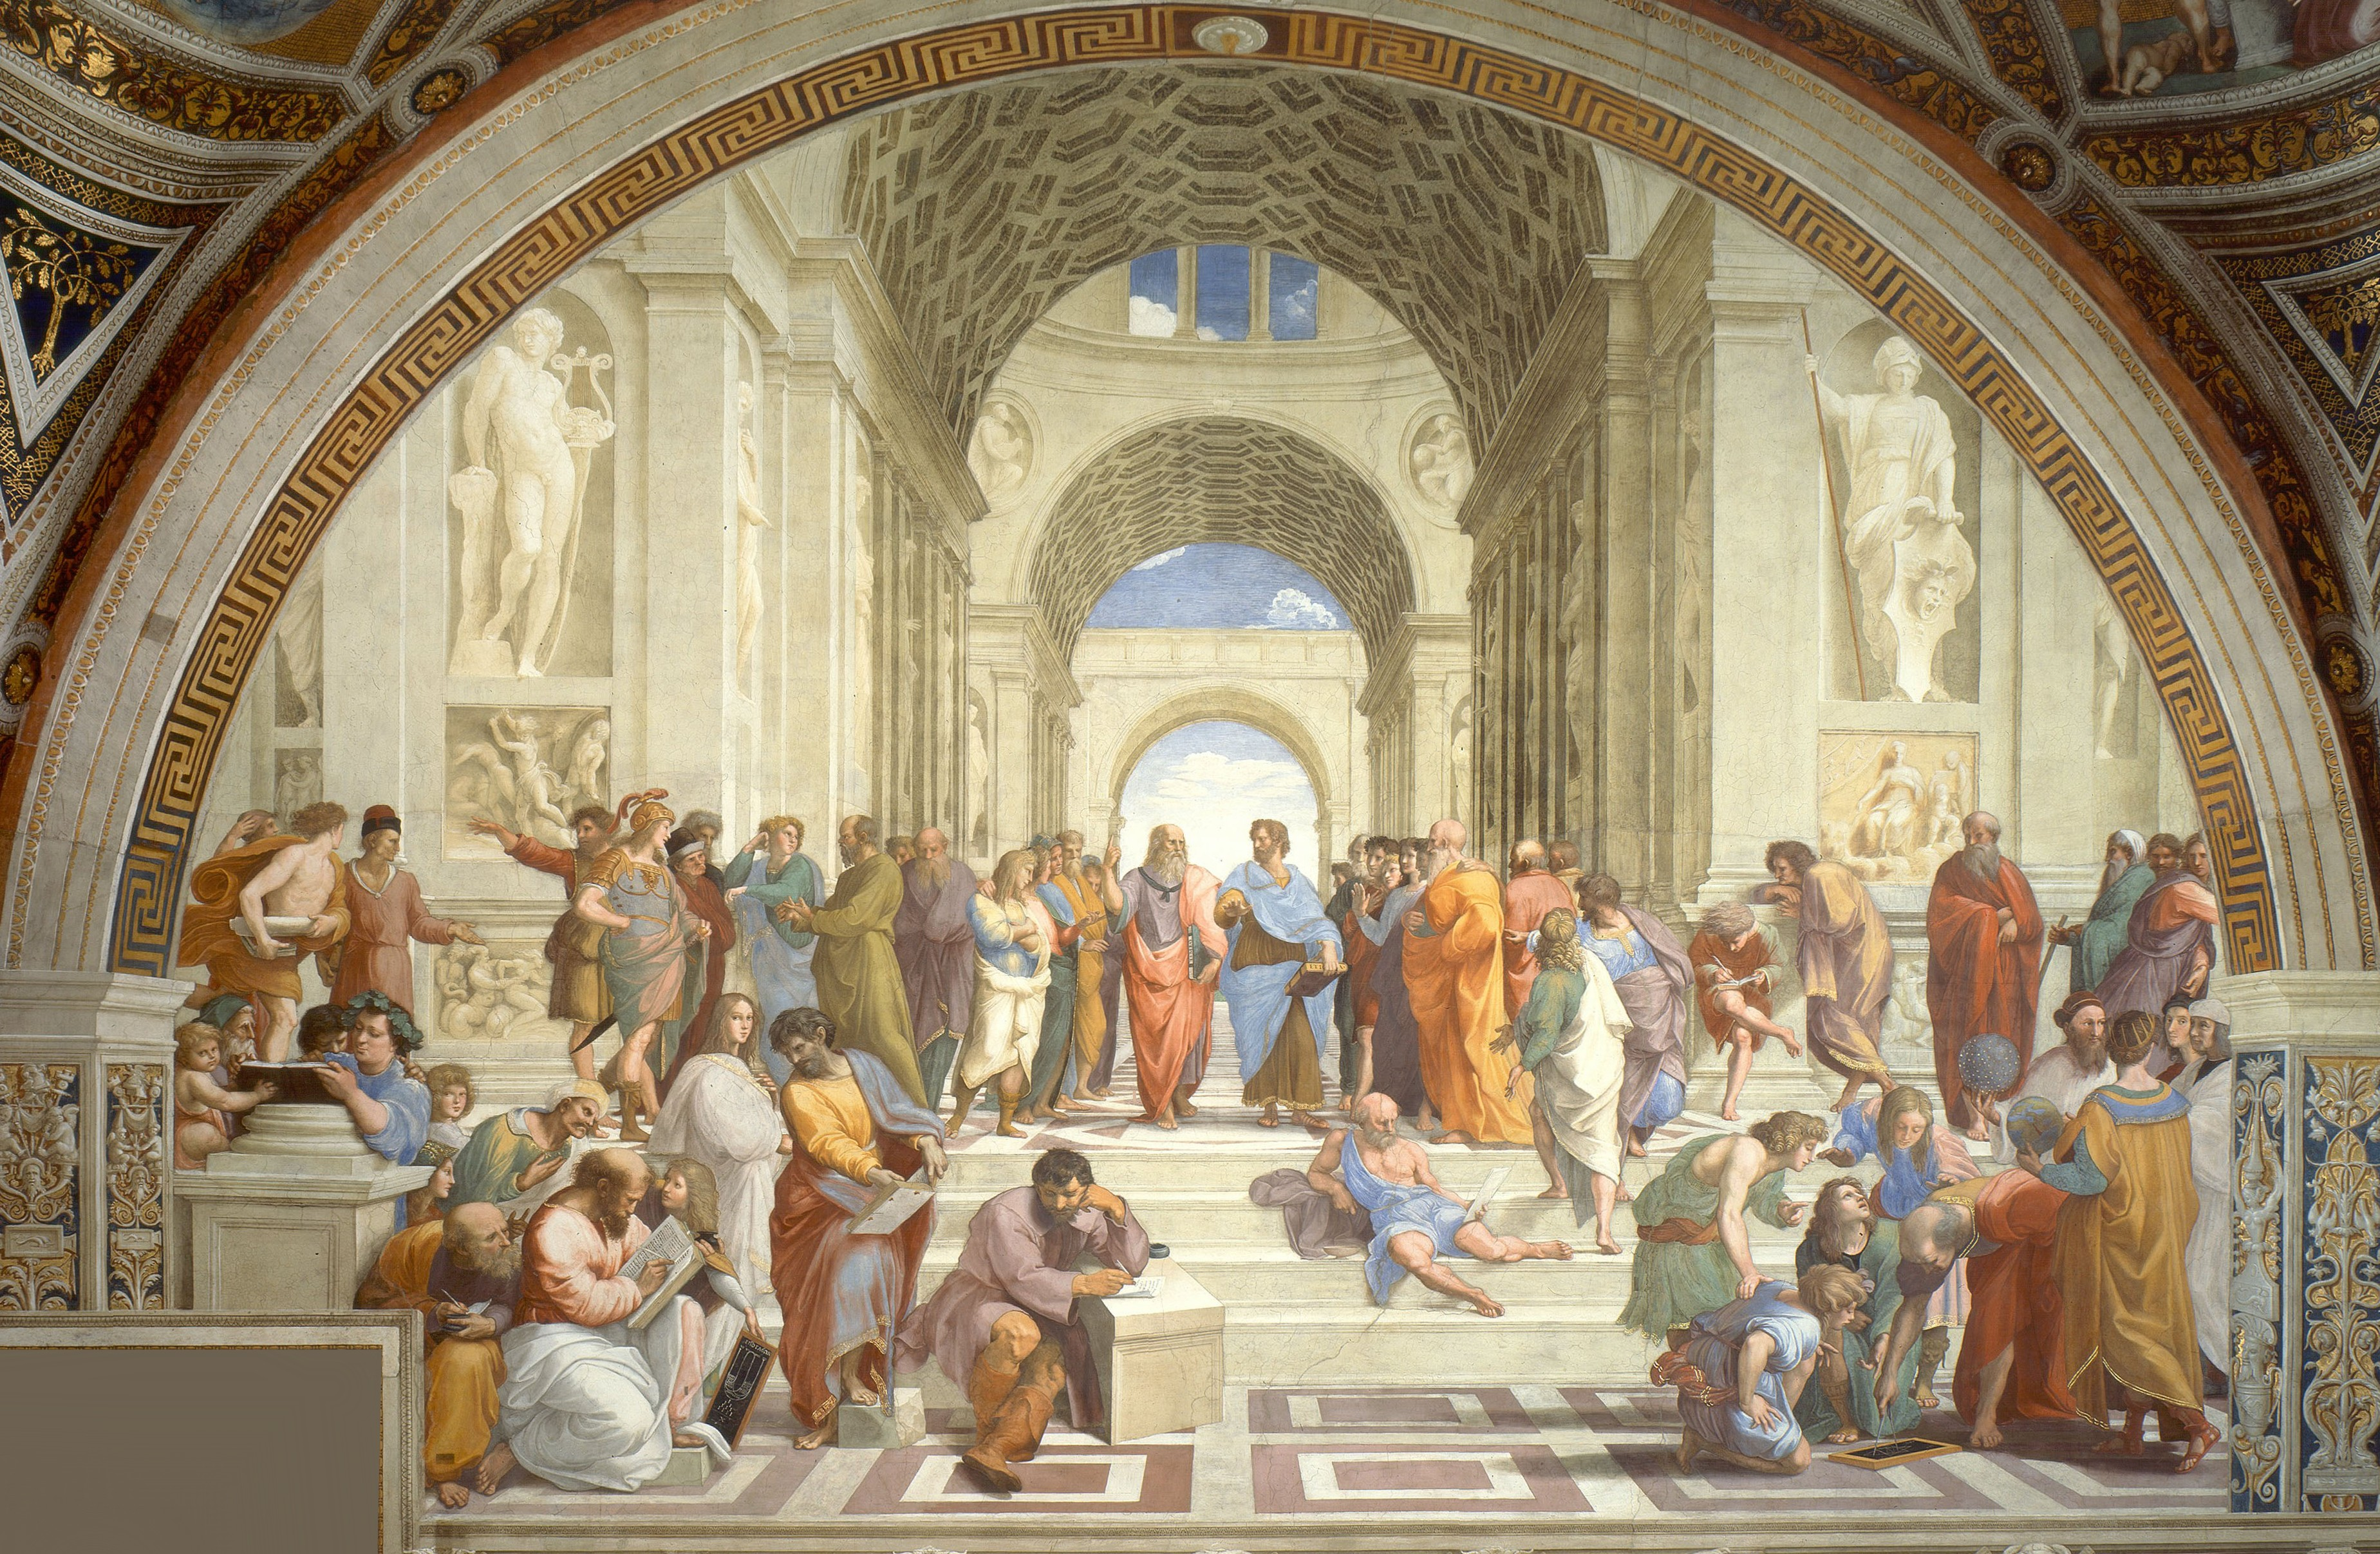 http://upload.wikimedia.org/wikipedia/commons/c/c3/Raphael_School_of_Athens.jpg